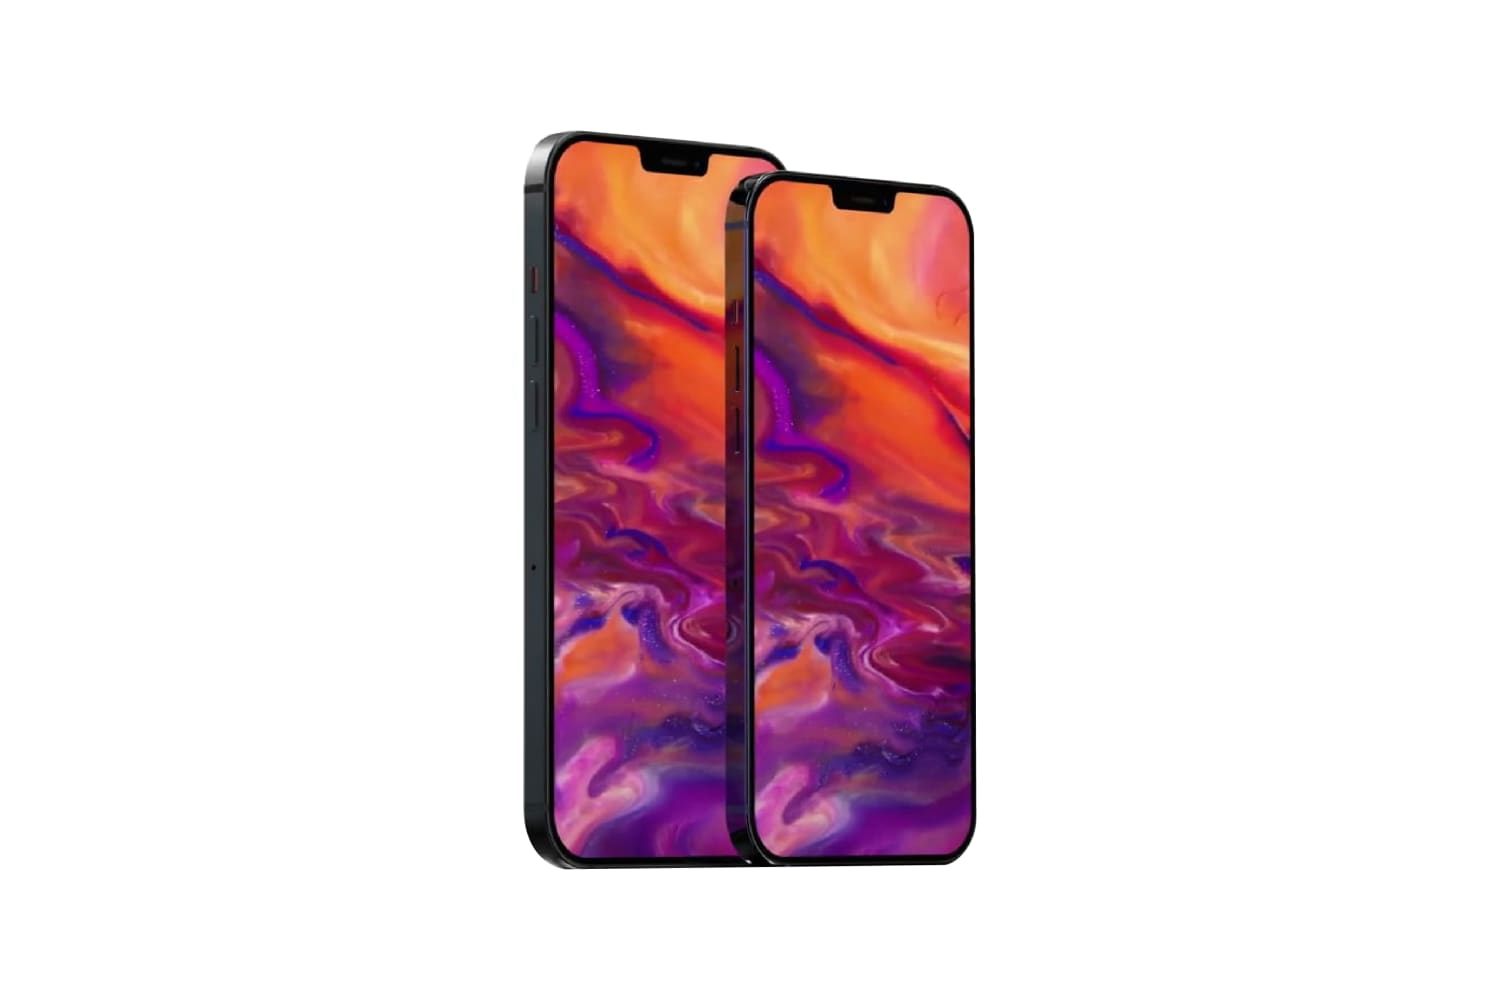 iphone-12-pro-max-connectivity-and-camera-details-confirmed-20200903-1